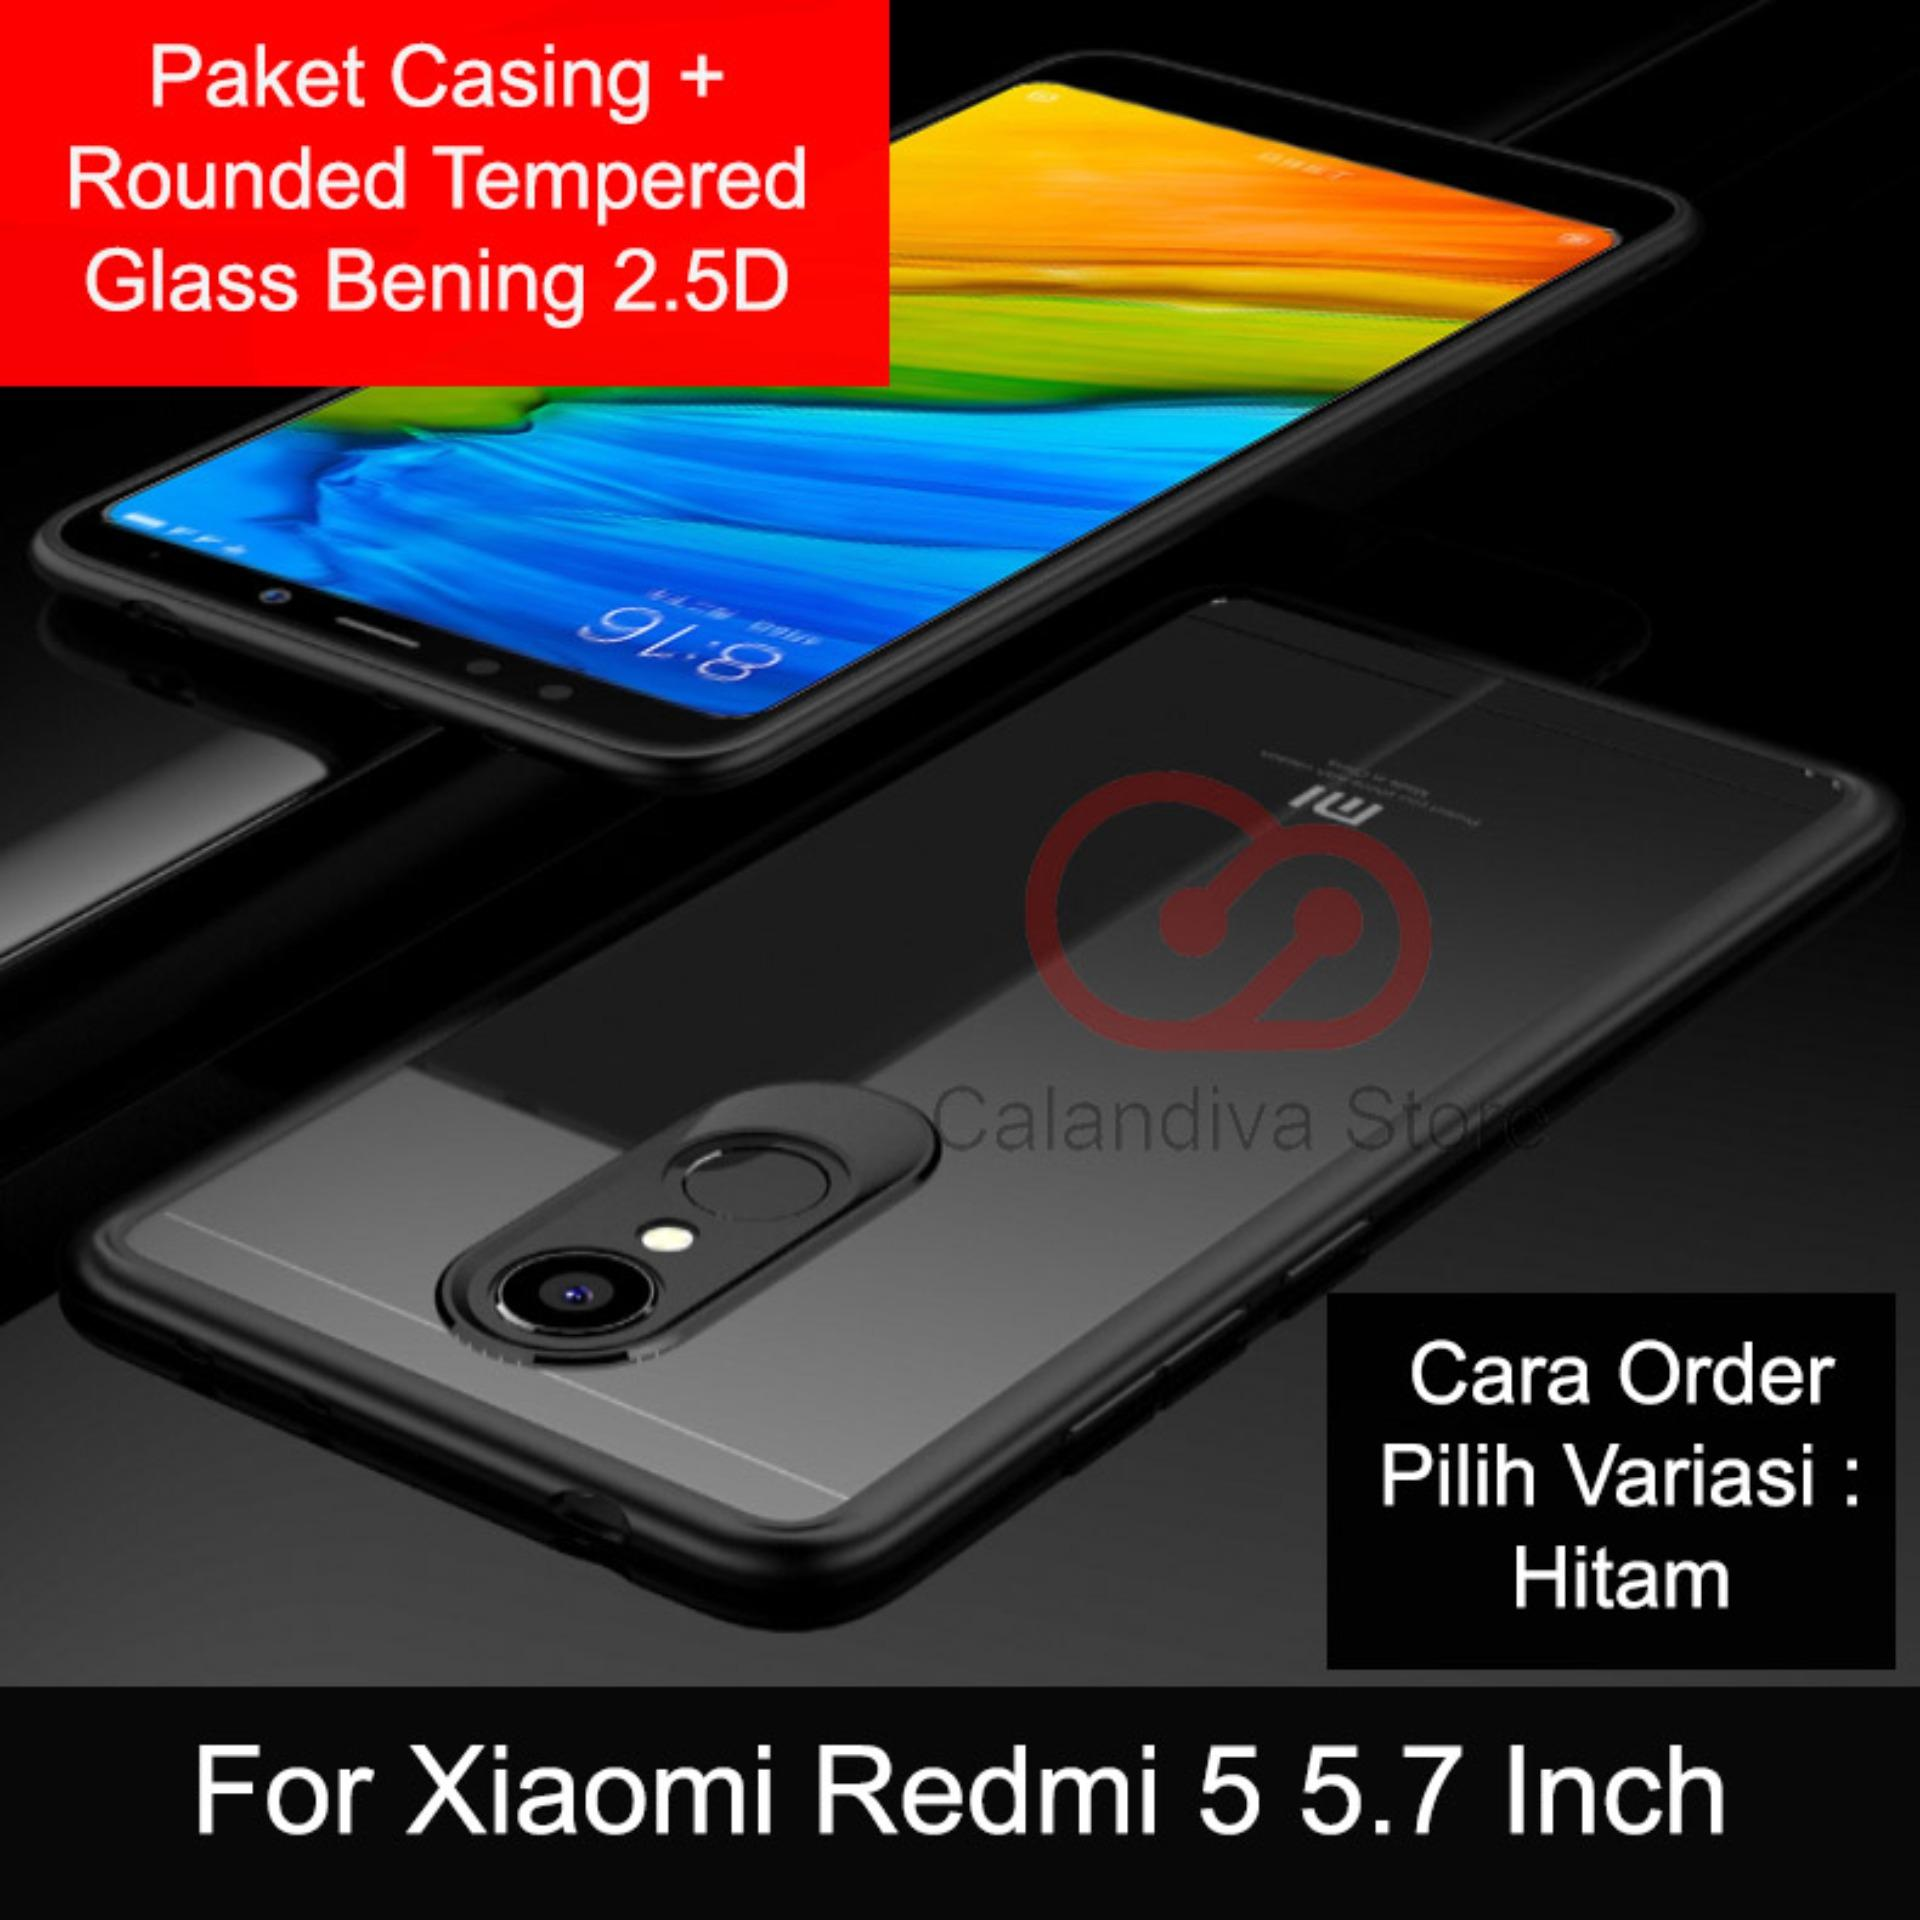 Review Calandiva Transparent Shockproof Hybrid Premium Quality Grade A Case For Xiaomi Redmi 5 5 7 Inch Rounded Tempered Glass Bening 2 5D